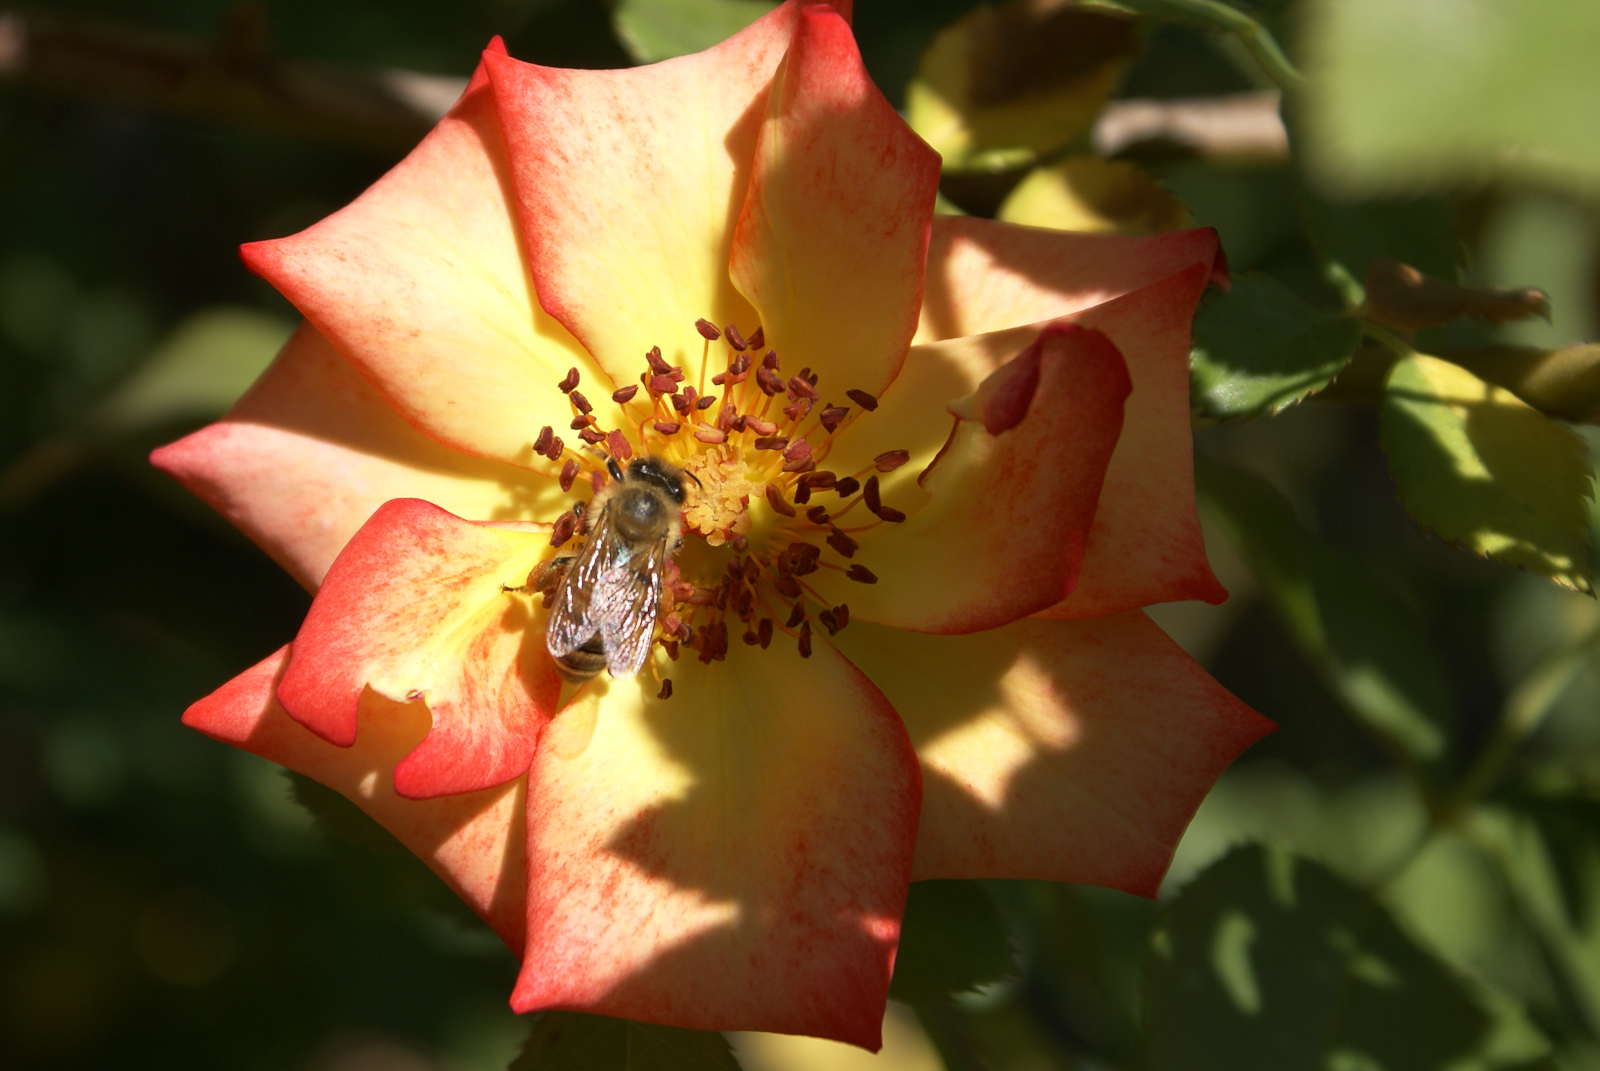 Rose Betty Boop Yellow Center To Red Edges Full Bloom